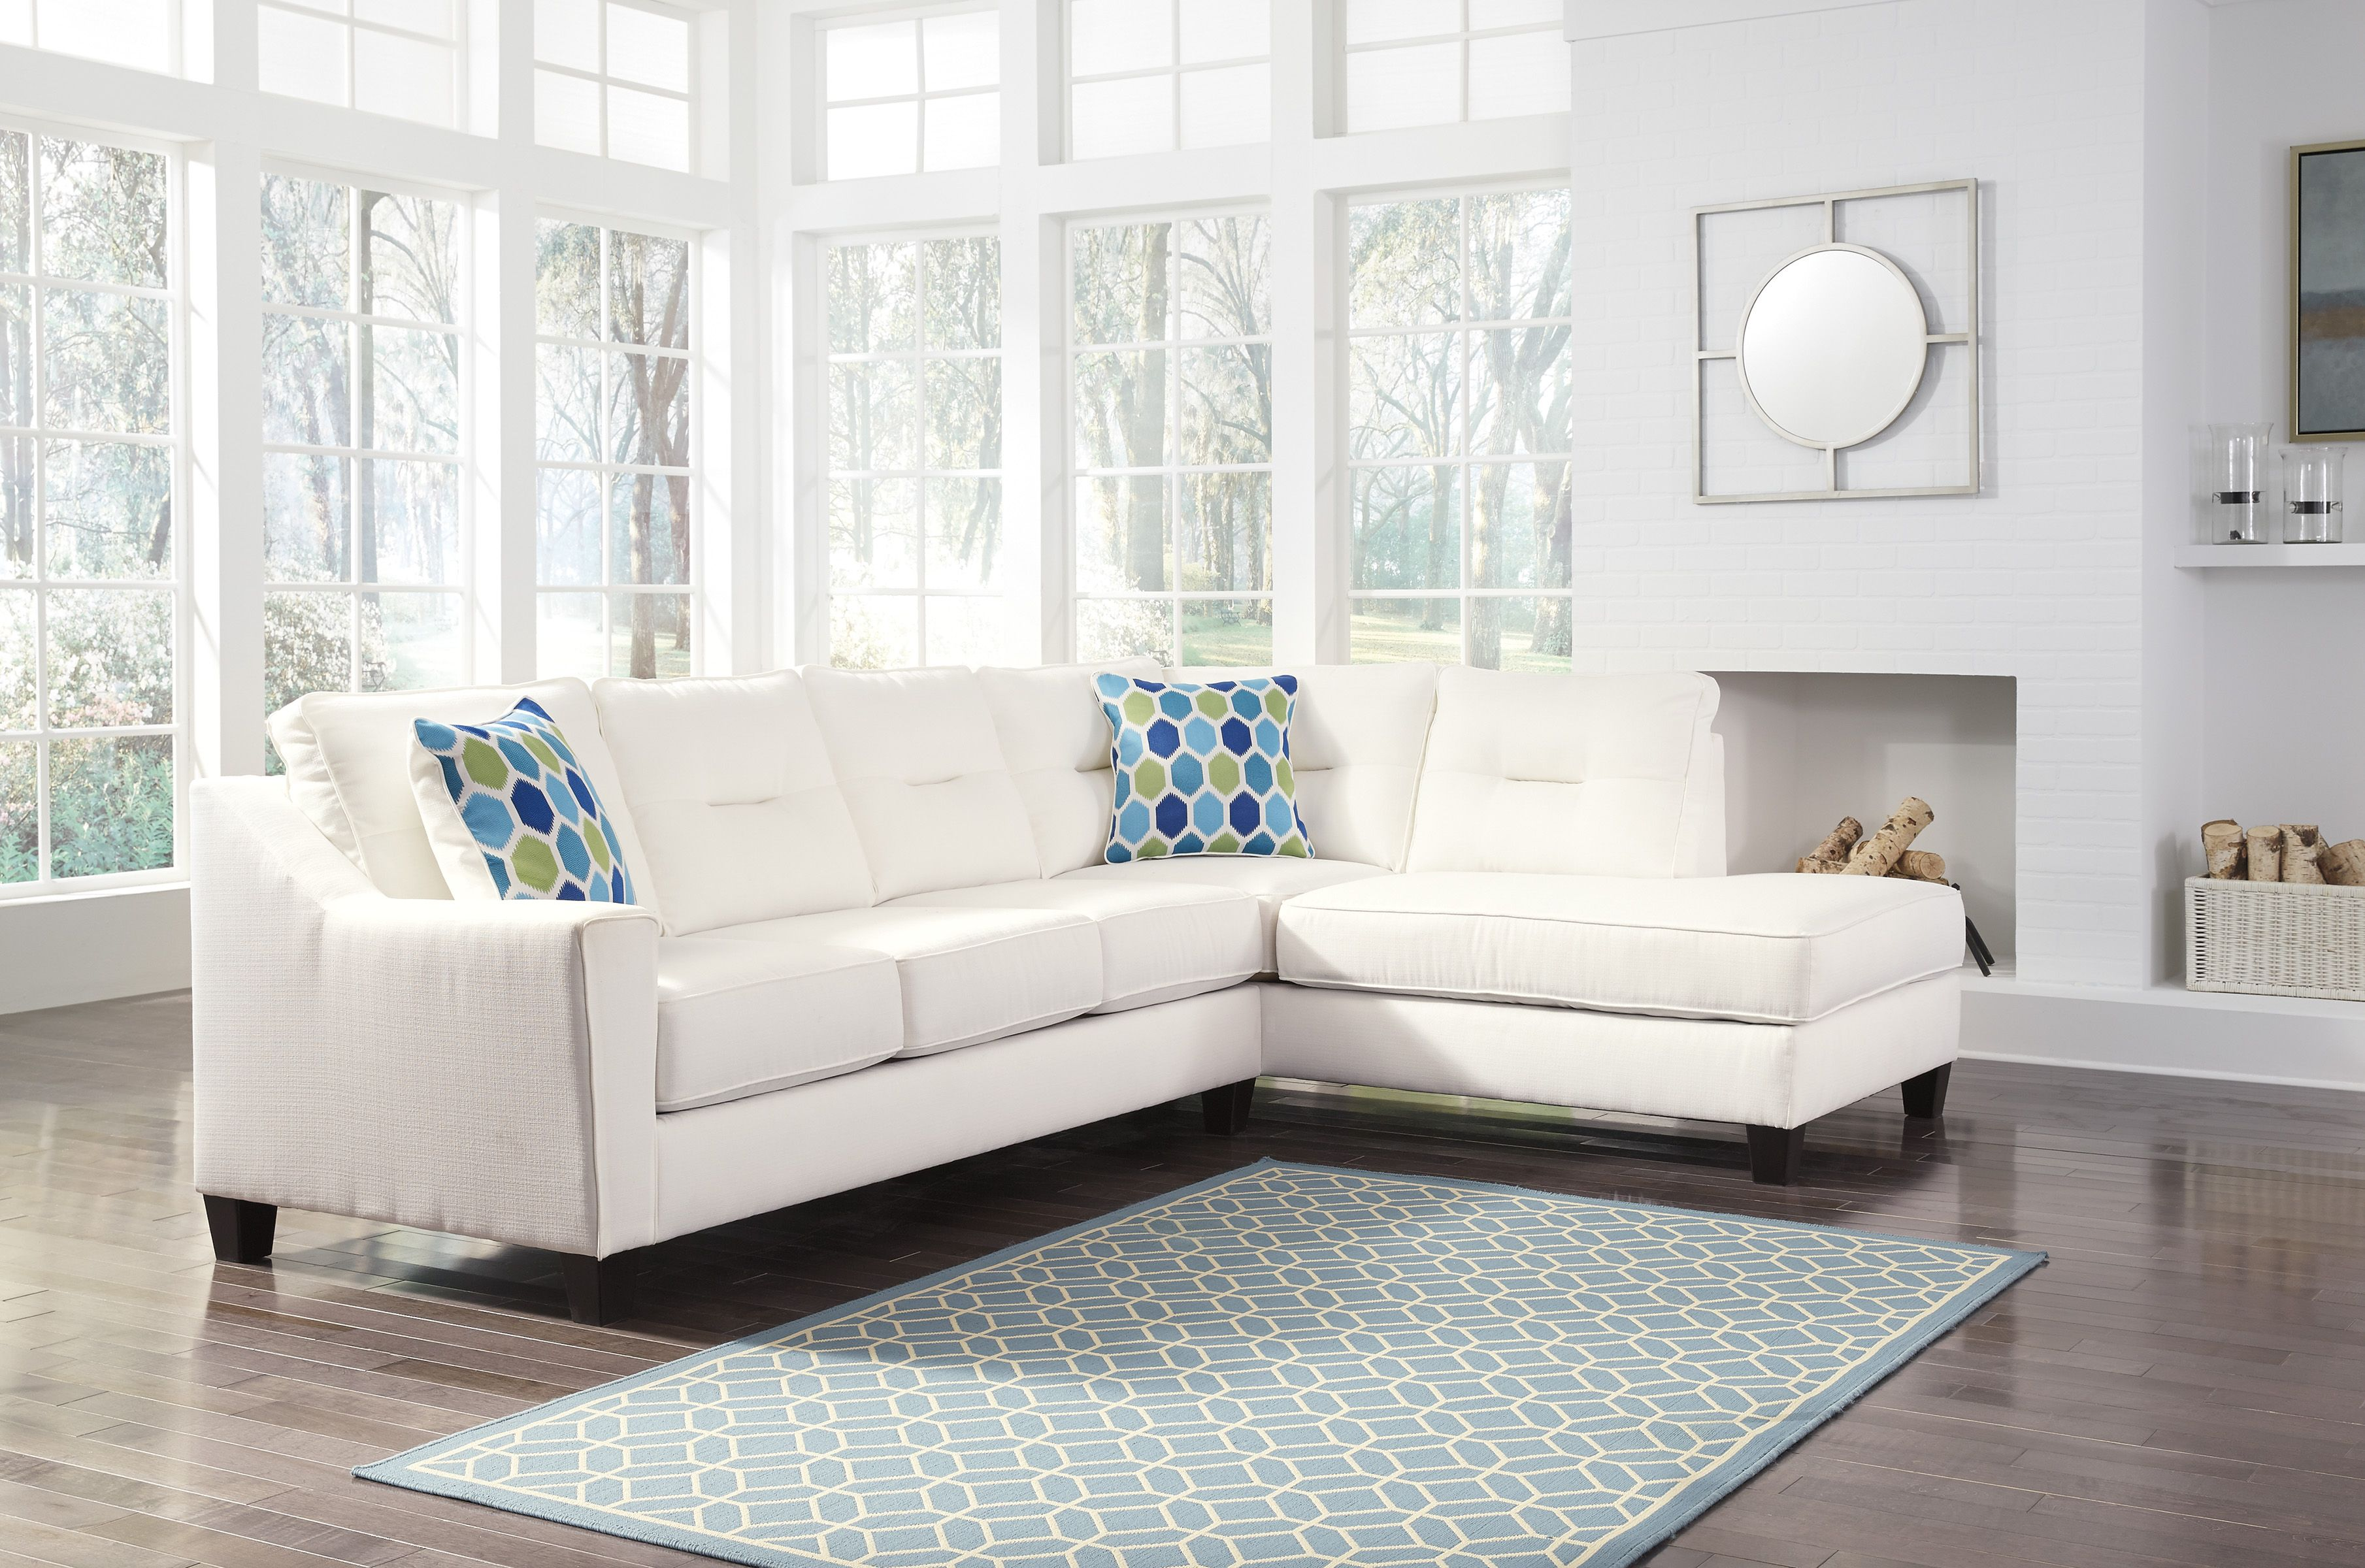 Peachy Kirwin Nuvella 99604 17 By Ashley Sectional Sofa Home Interior And Landscaping Palasignezvosmurscom